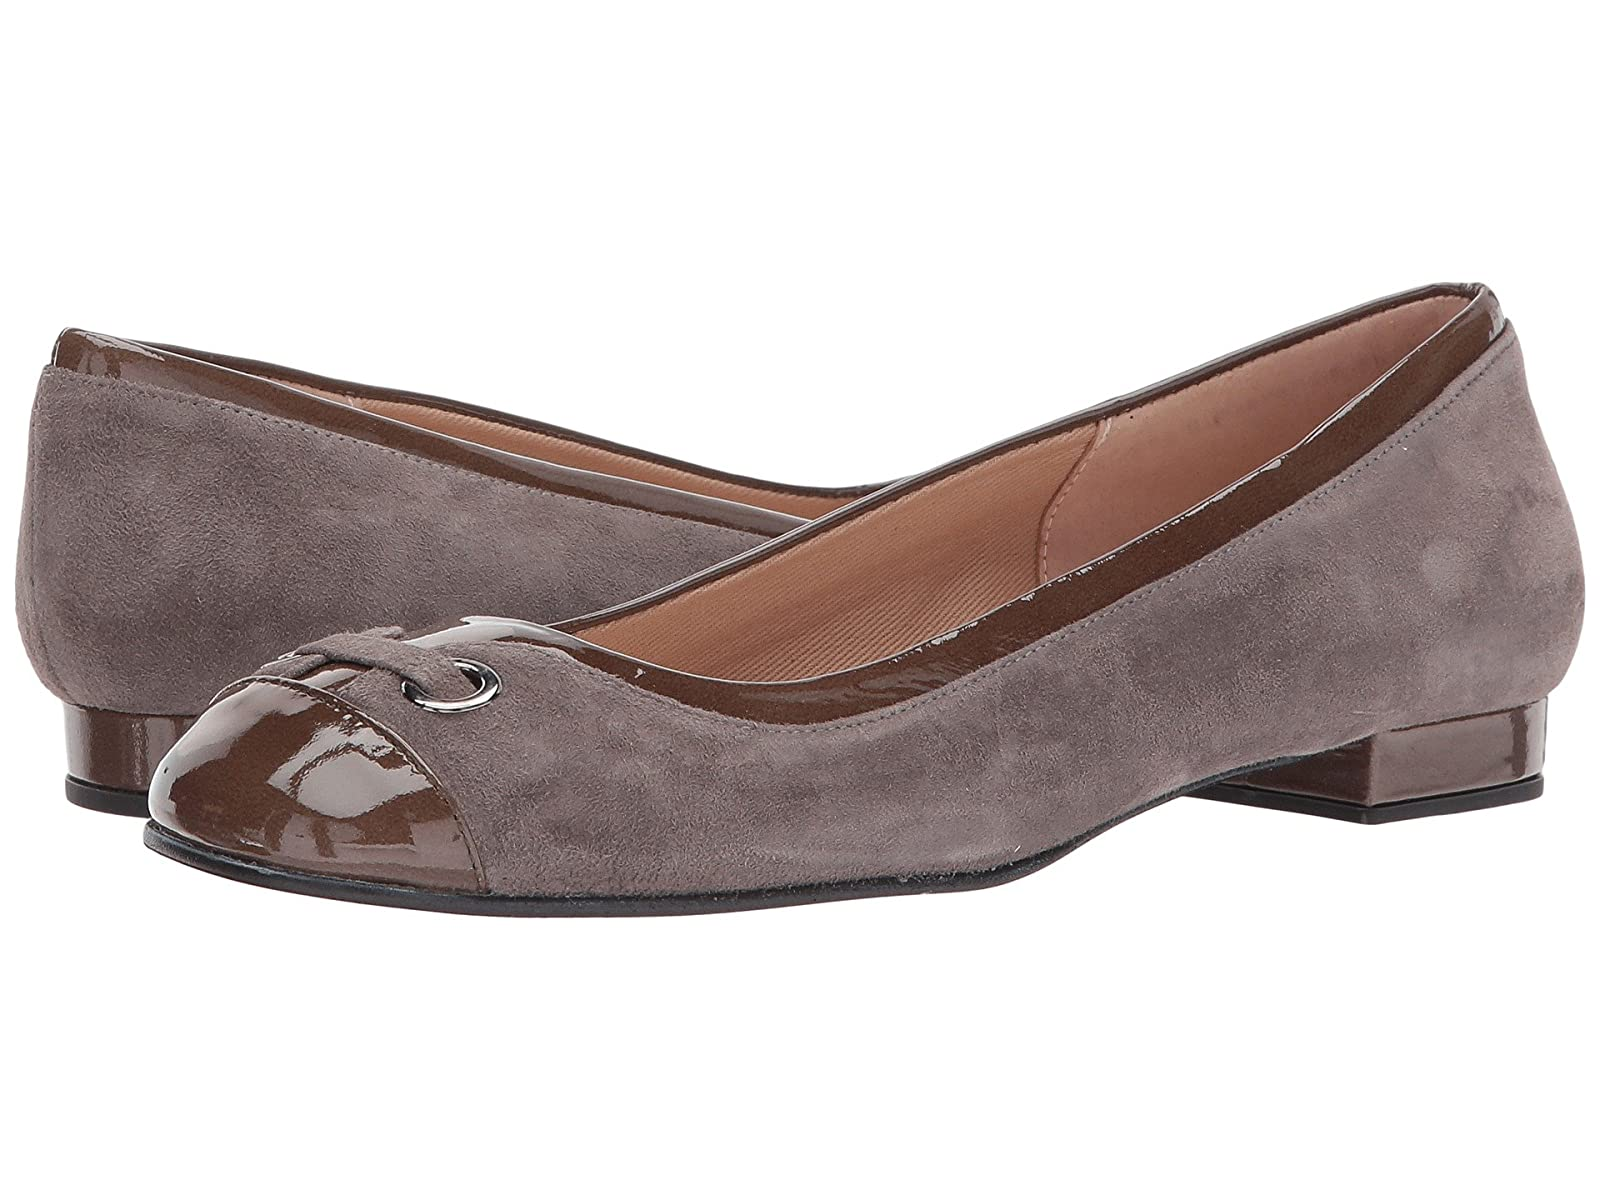 French Sole ZipperCheap and distinctive eye-catching shoes